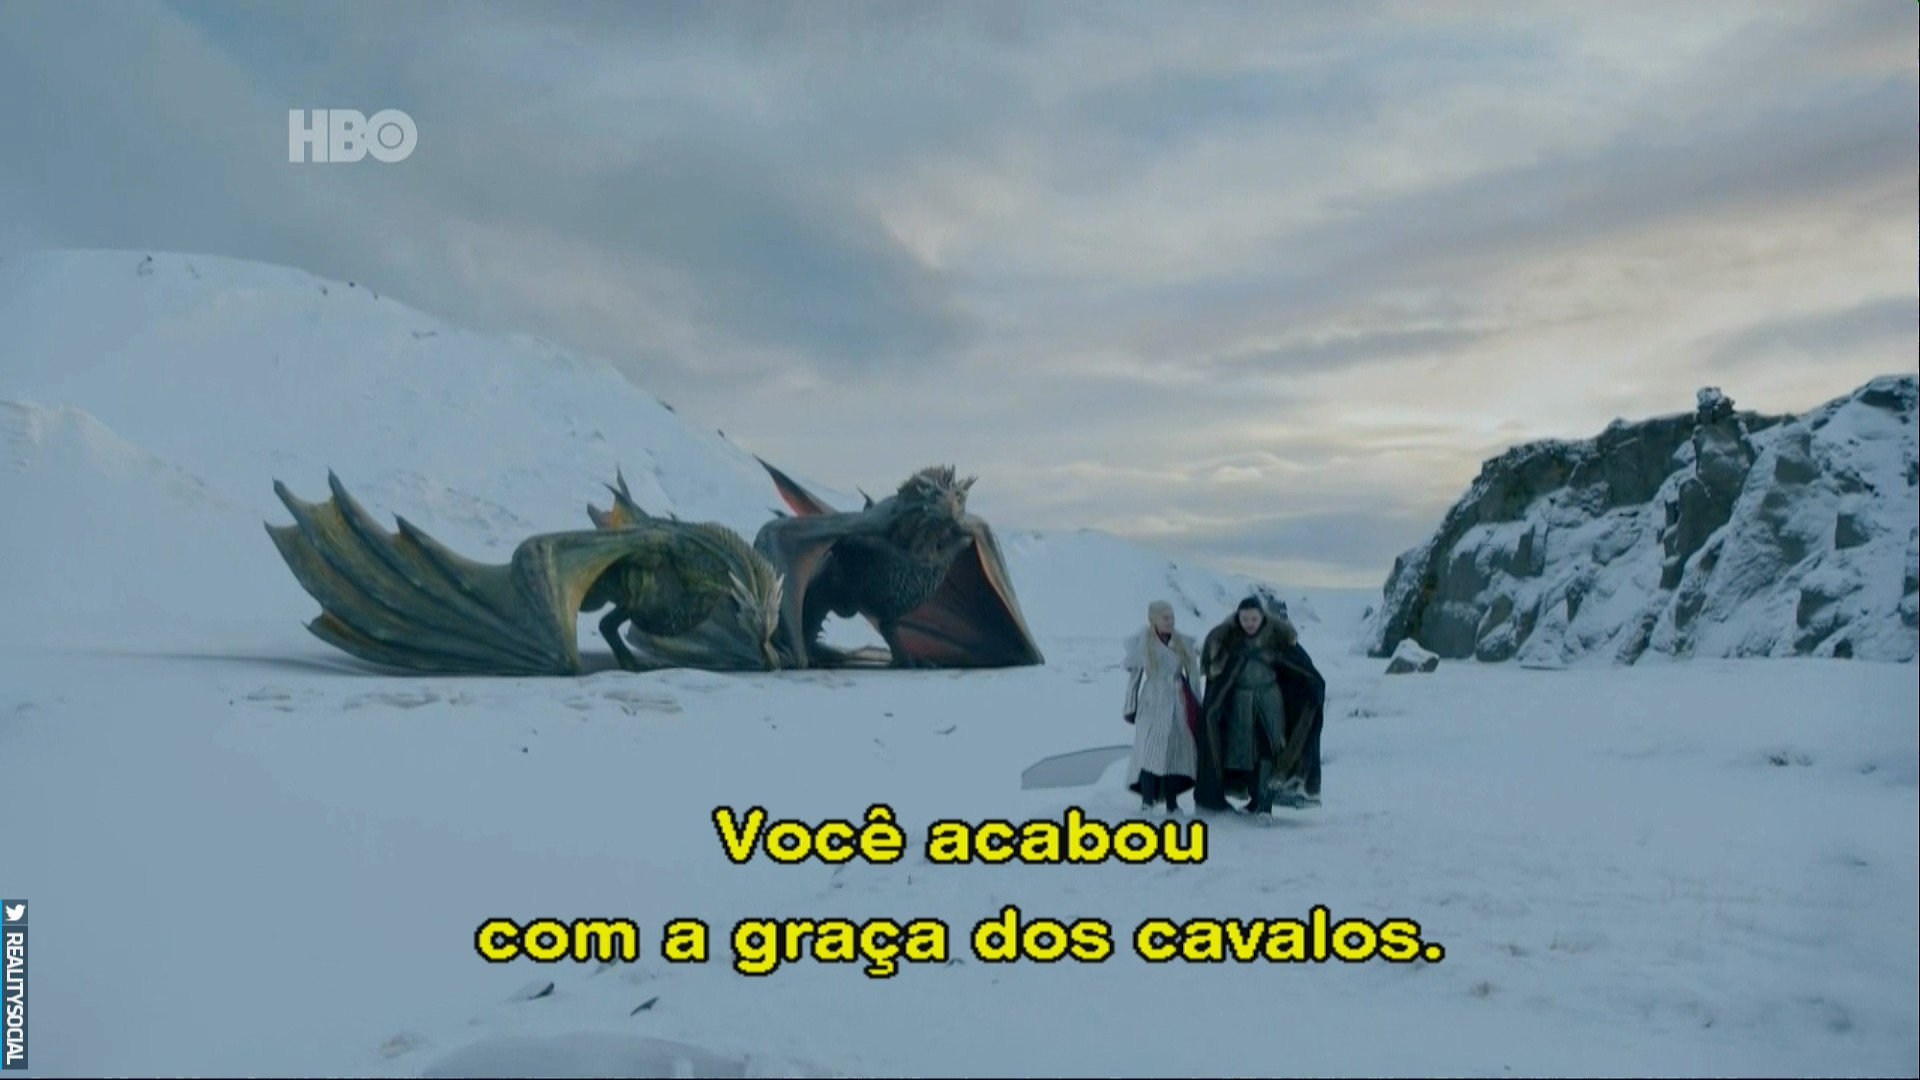 O que aconteceu no primeiro episódio da 8ª temporada de Game of Thrones?